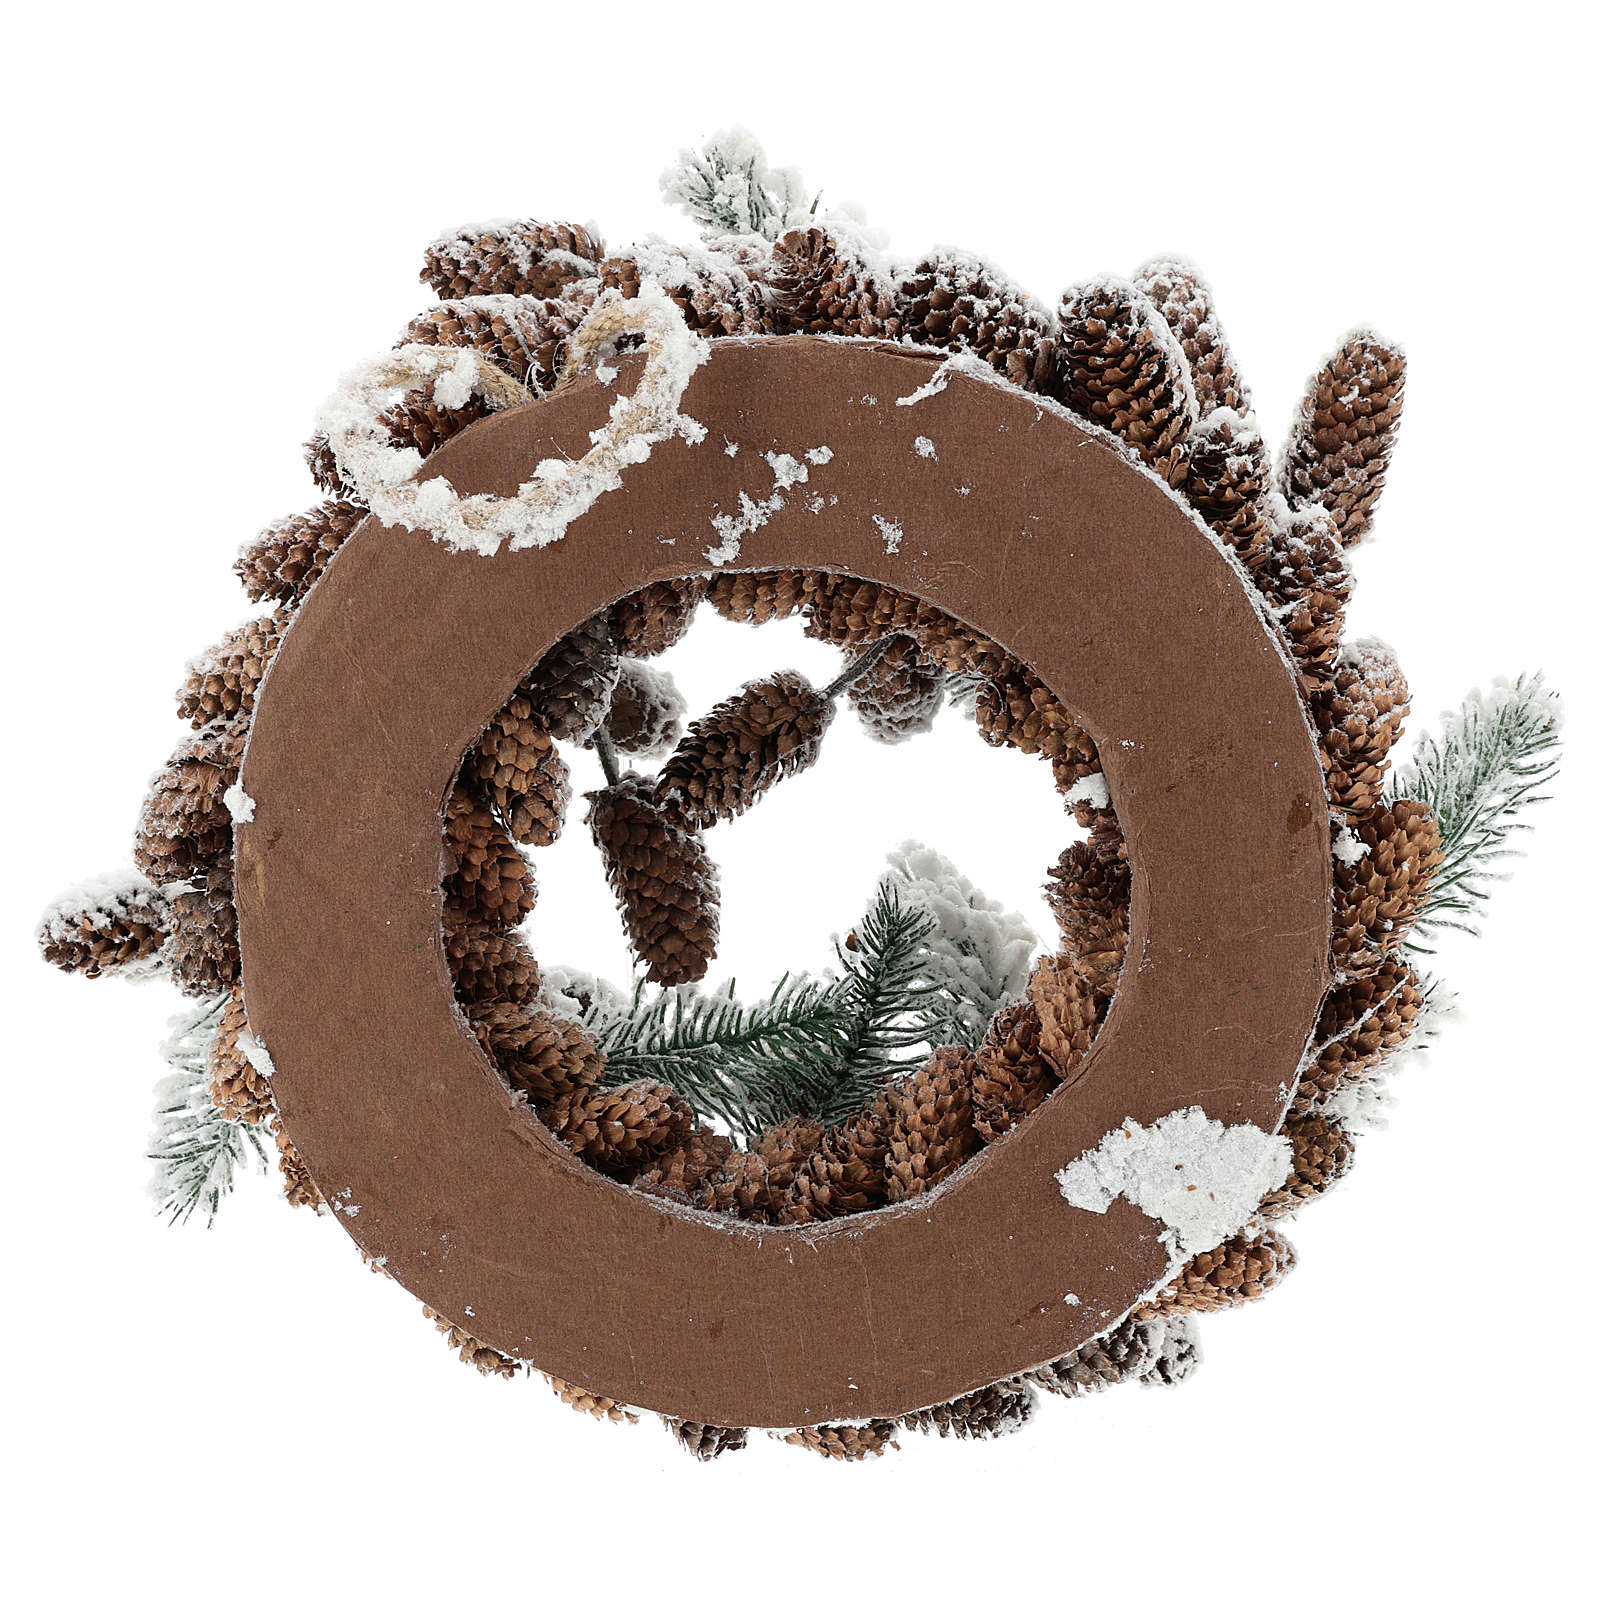 Snowy Advent wreath with pine cones 33 cm 3